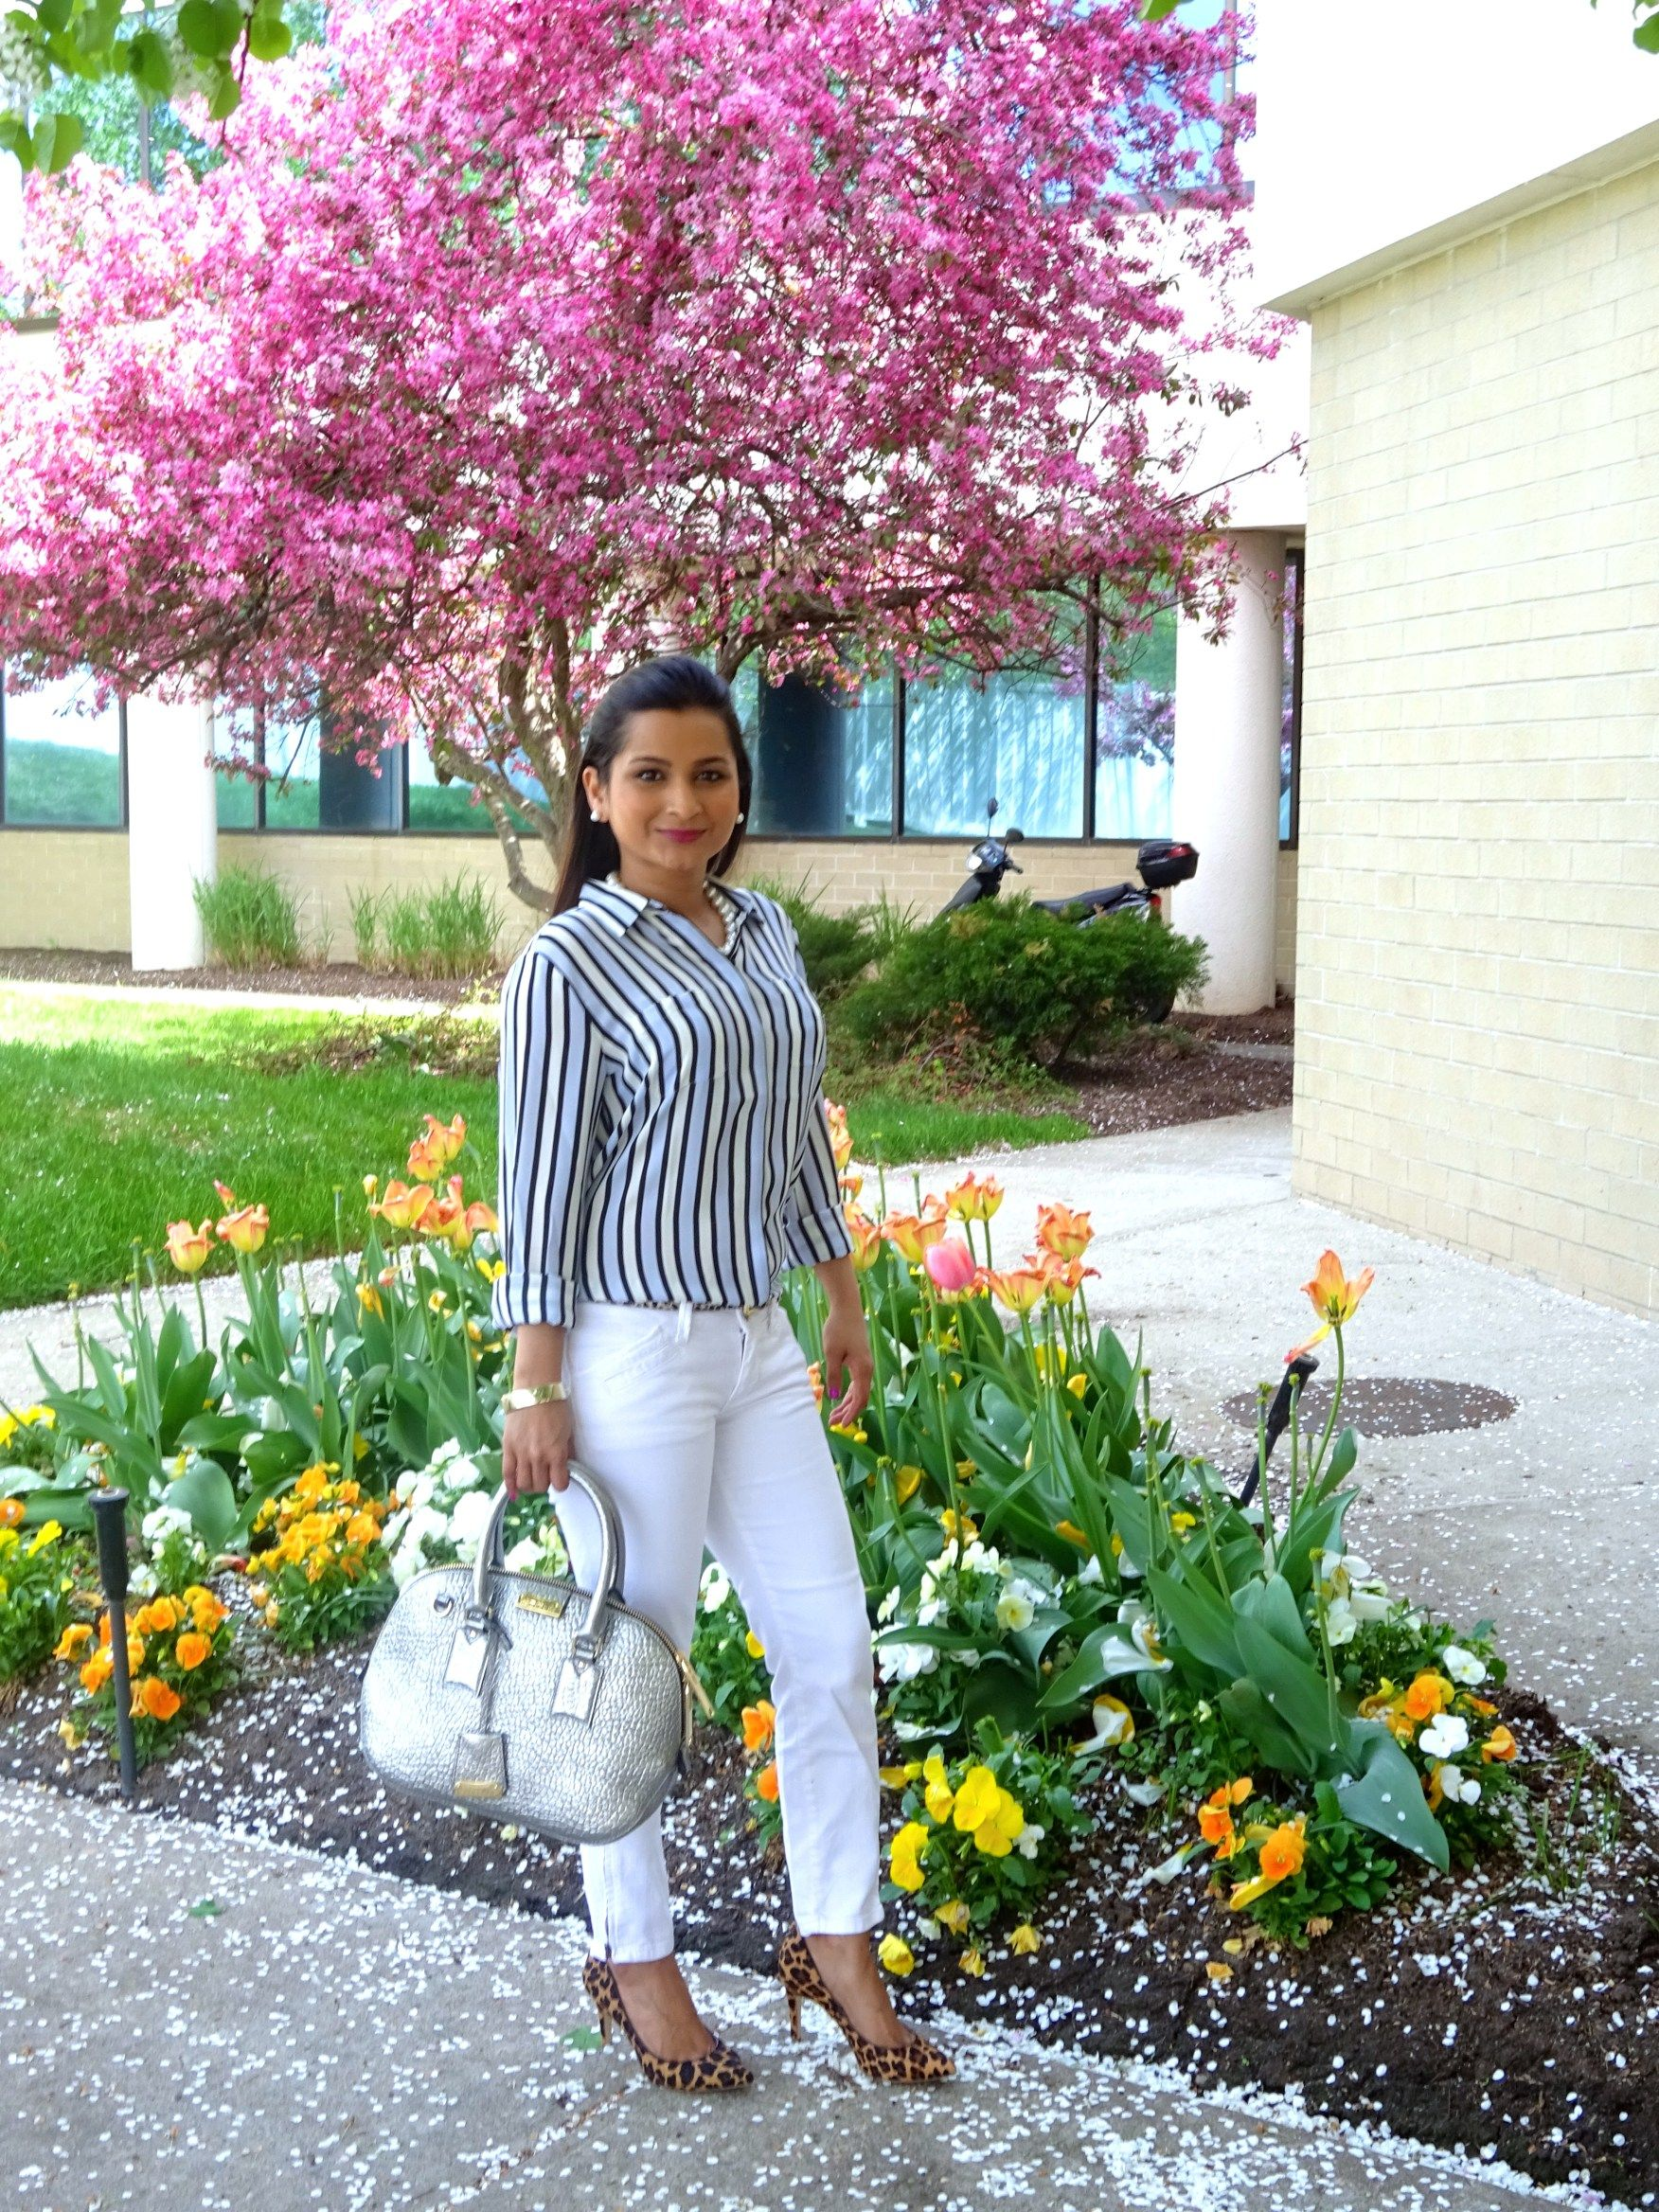 When the white jeans come out to play you know it's spring weather! The best…